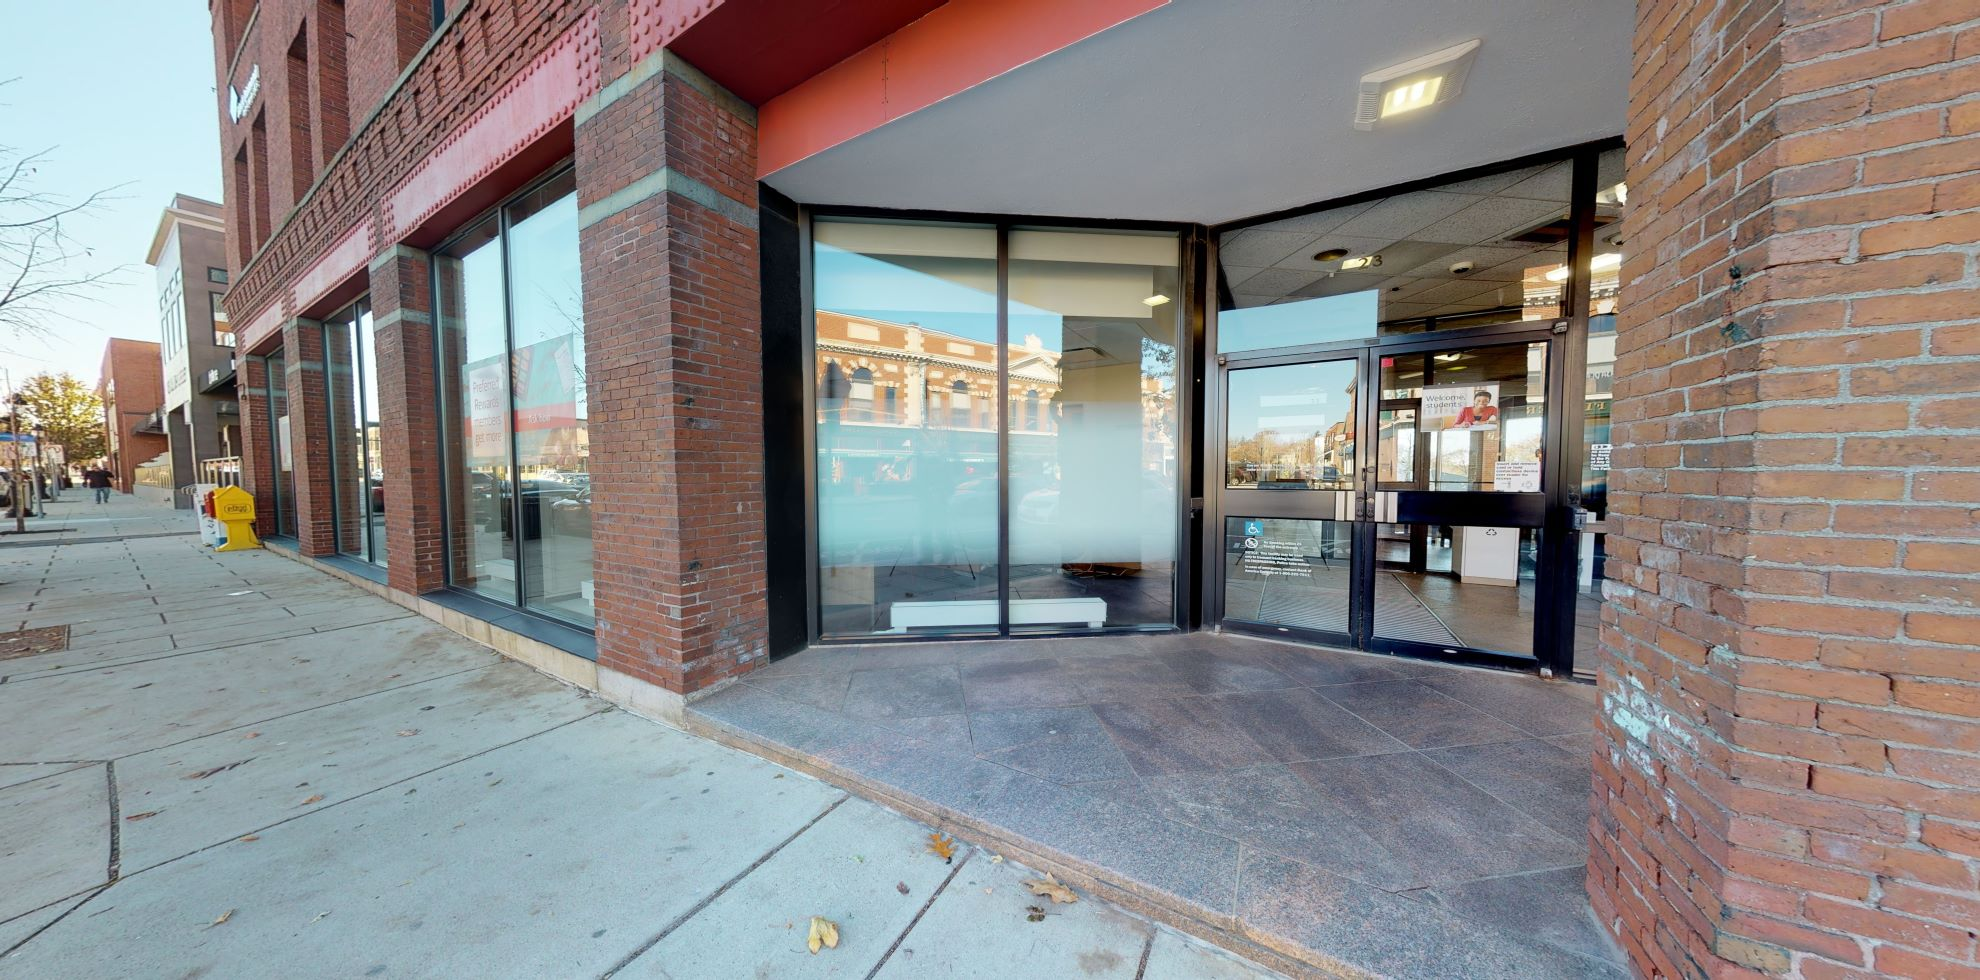 Bank of America financial center with drive-thru ATM   23 Main St, Andover, MA 01810